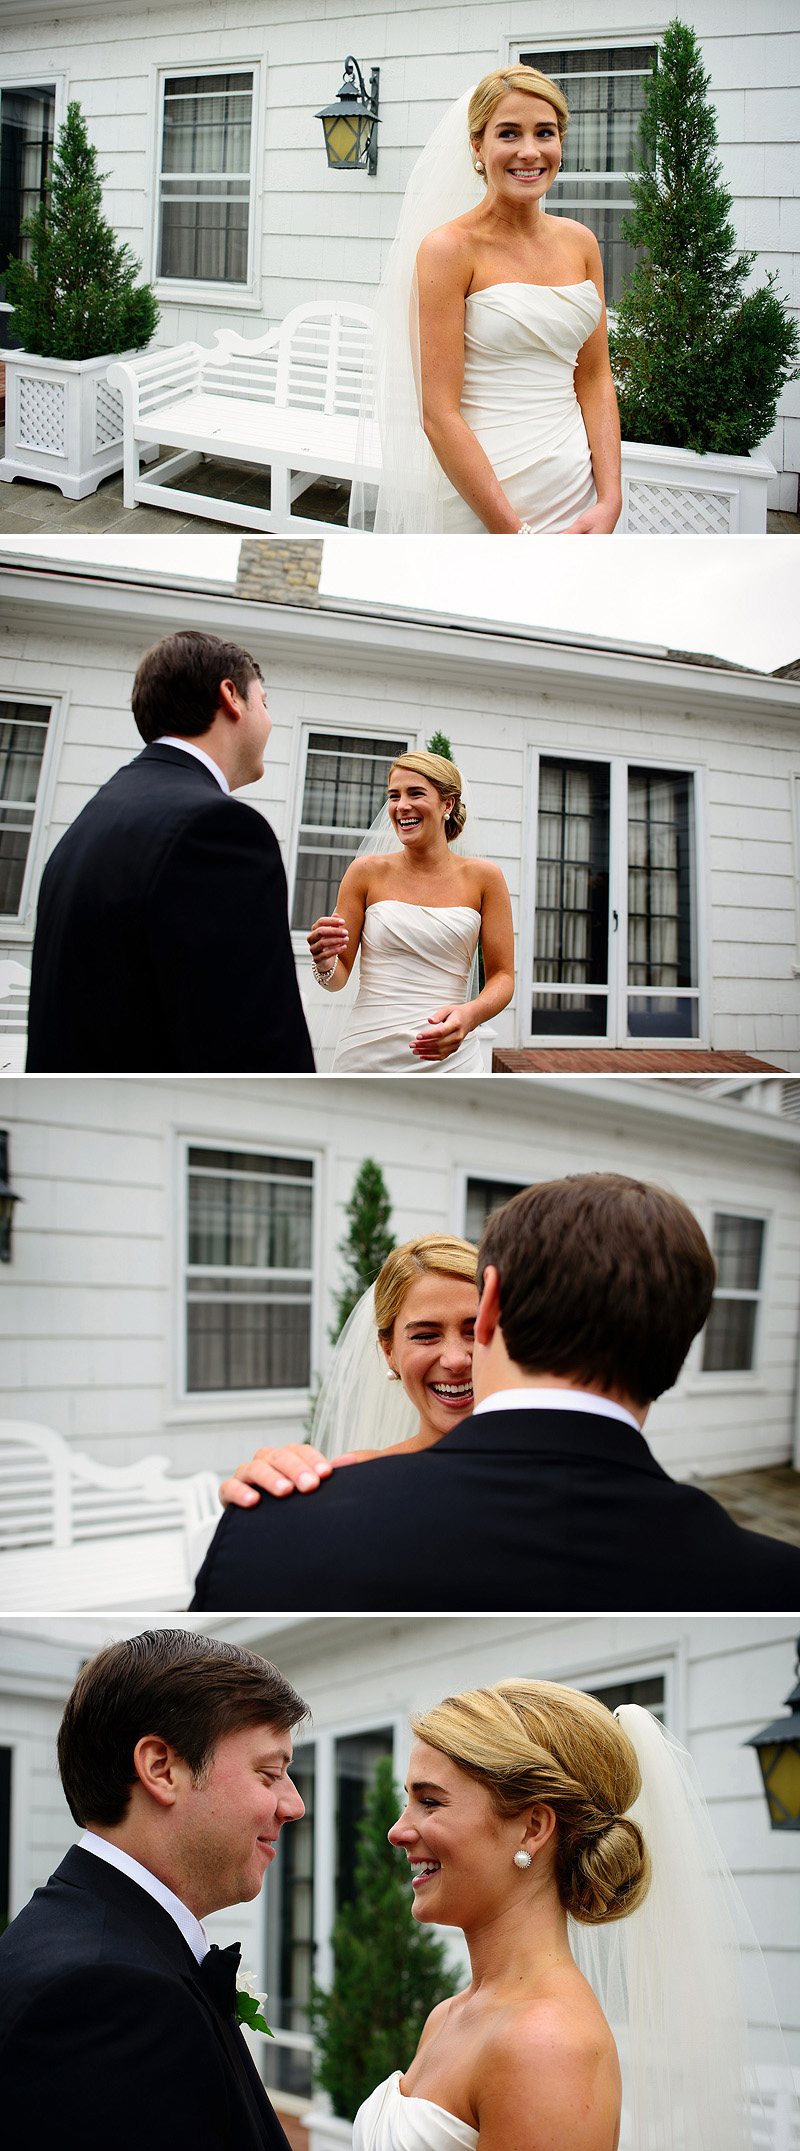 Emotional first moment between a happy bride and groom.